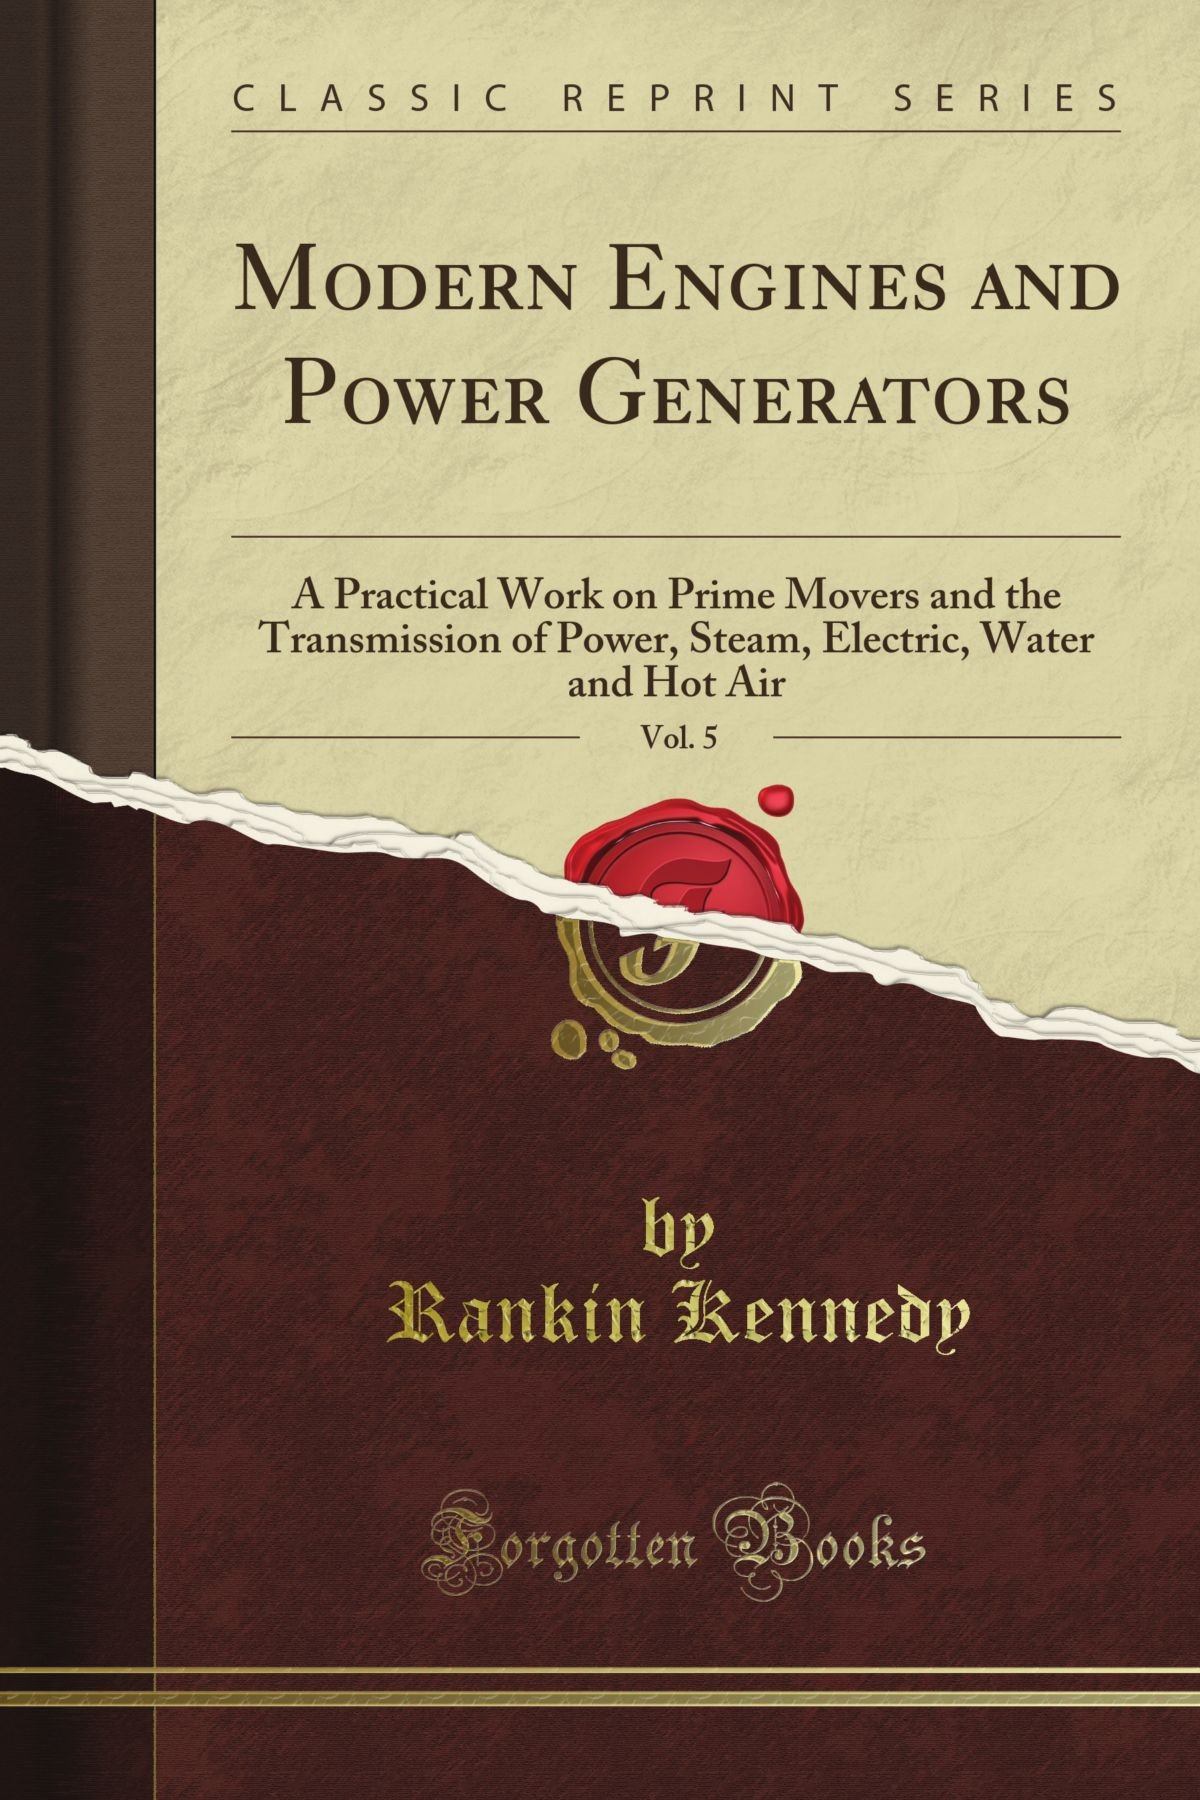 Modern Engines and Power Generators, Vol. 5: A Practical Work on Prime Movers and the Transmission of Power, Steam, Electric, Water and Hot Air (Classic Reprint) pdf